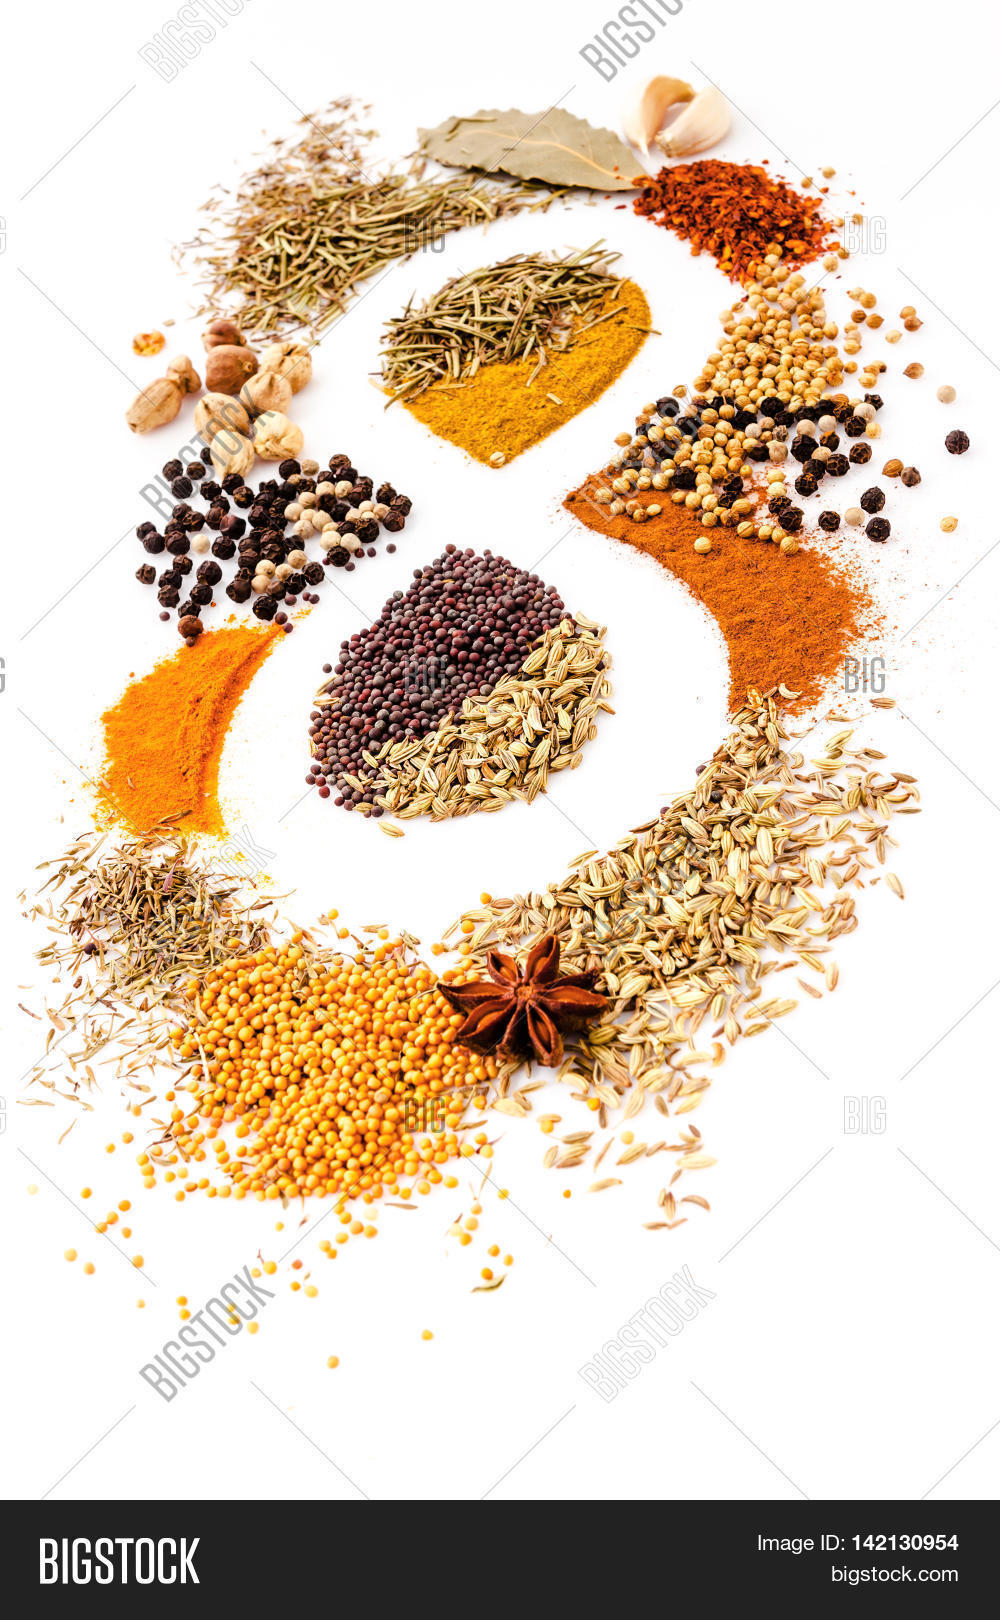 Infinity of nutrition Spice Mix herbs rosemarycardamon pepper.